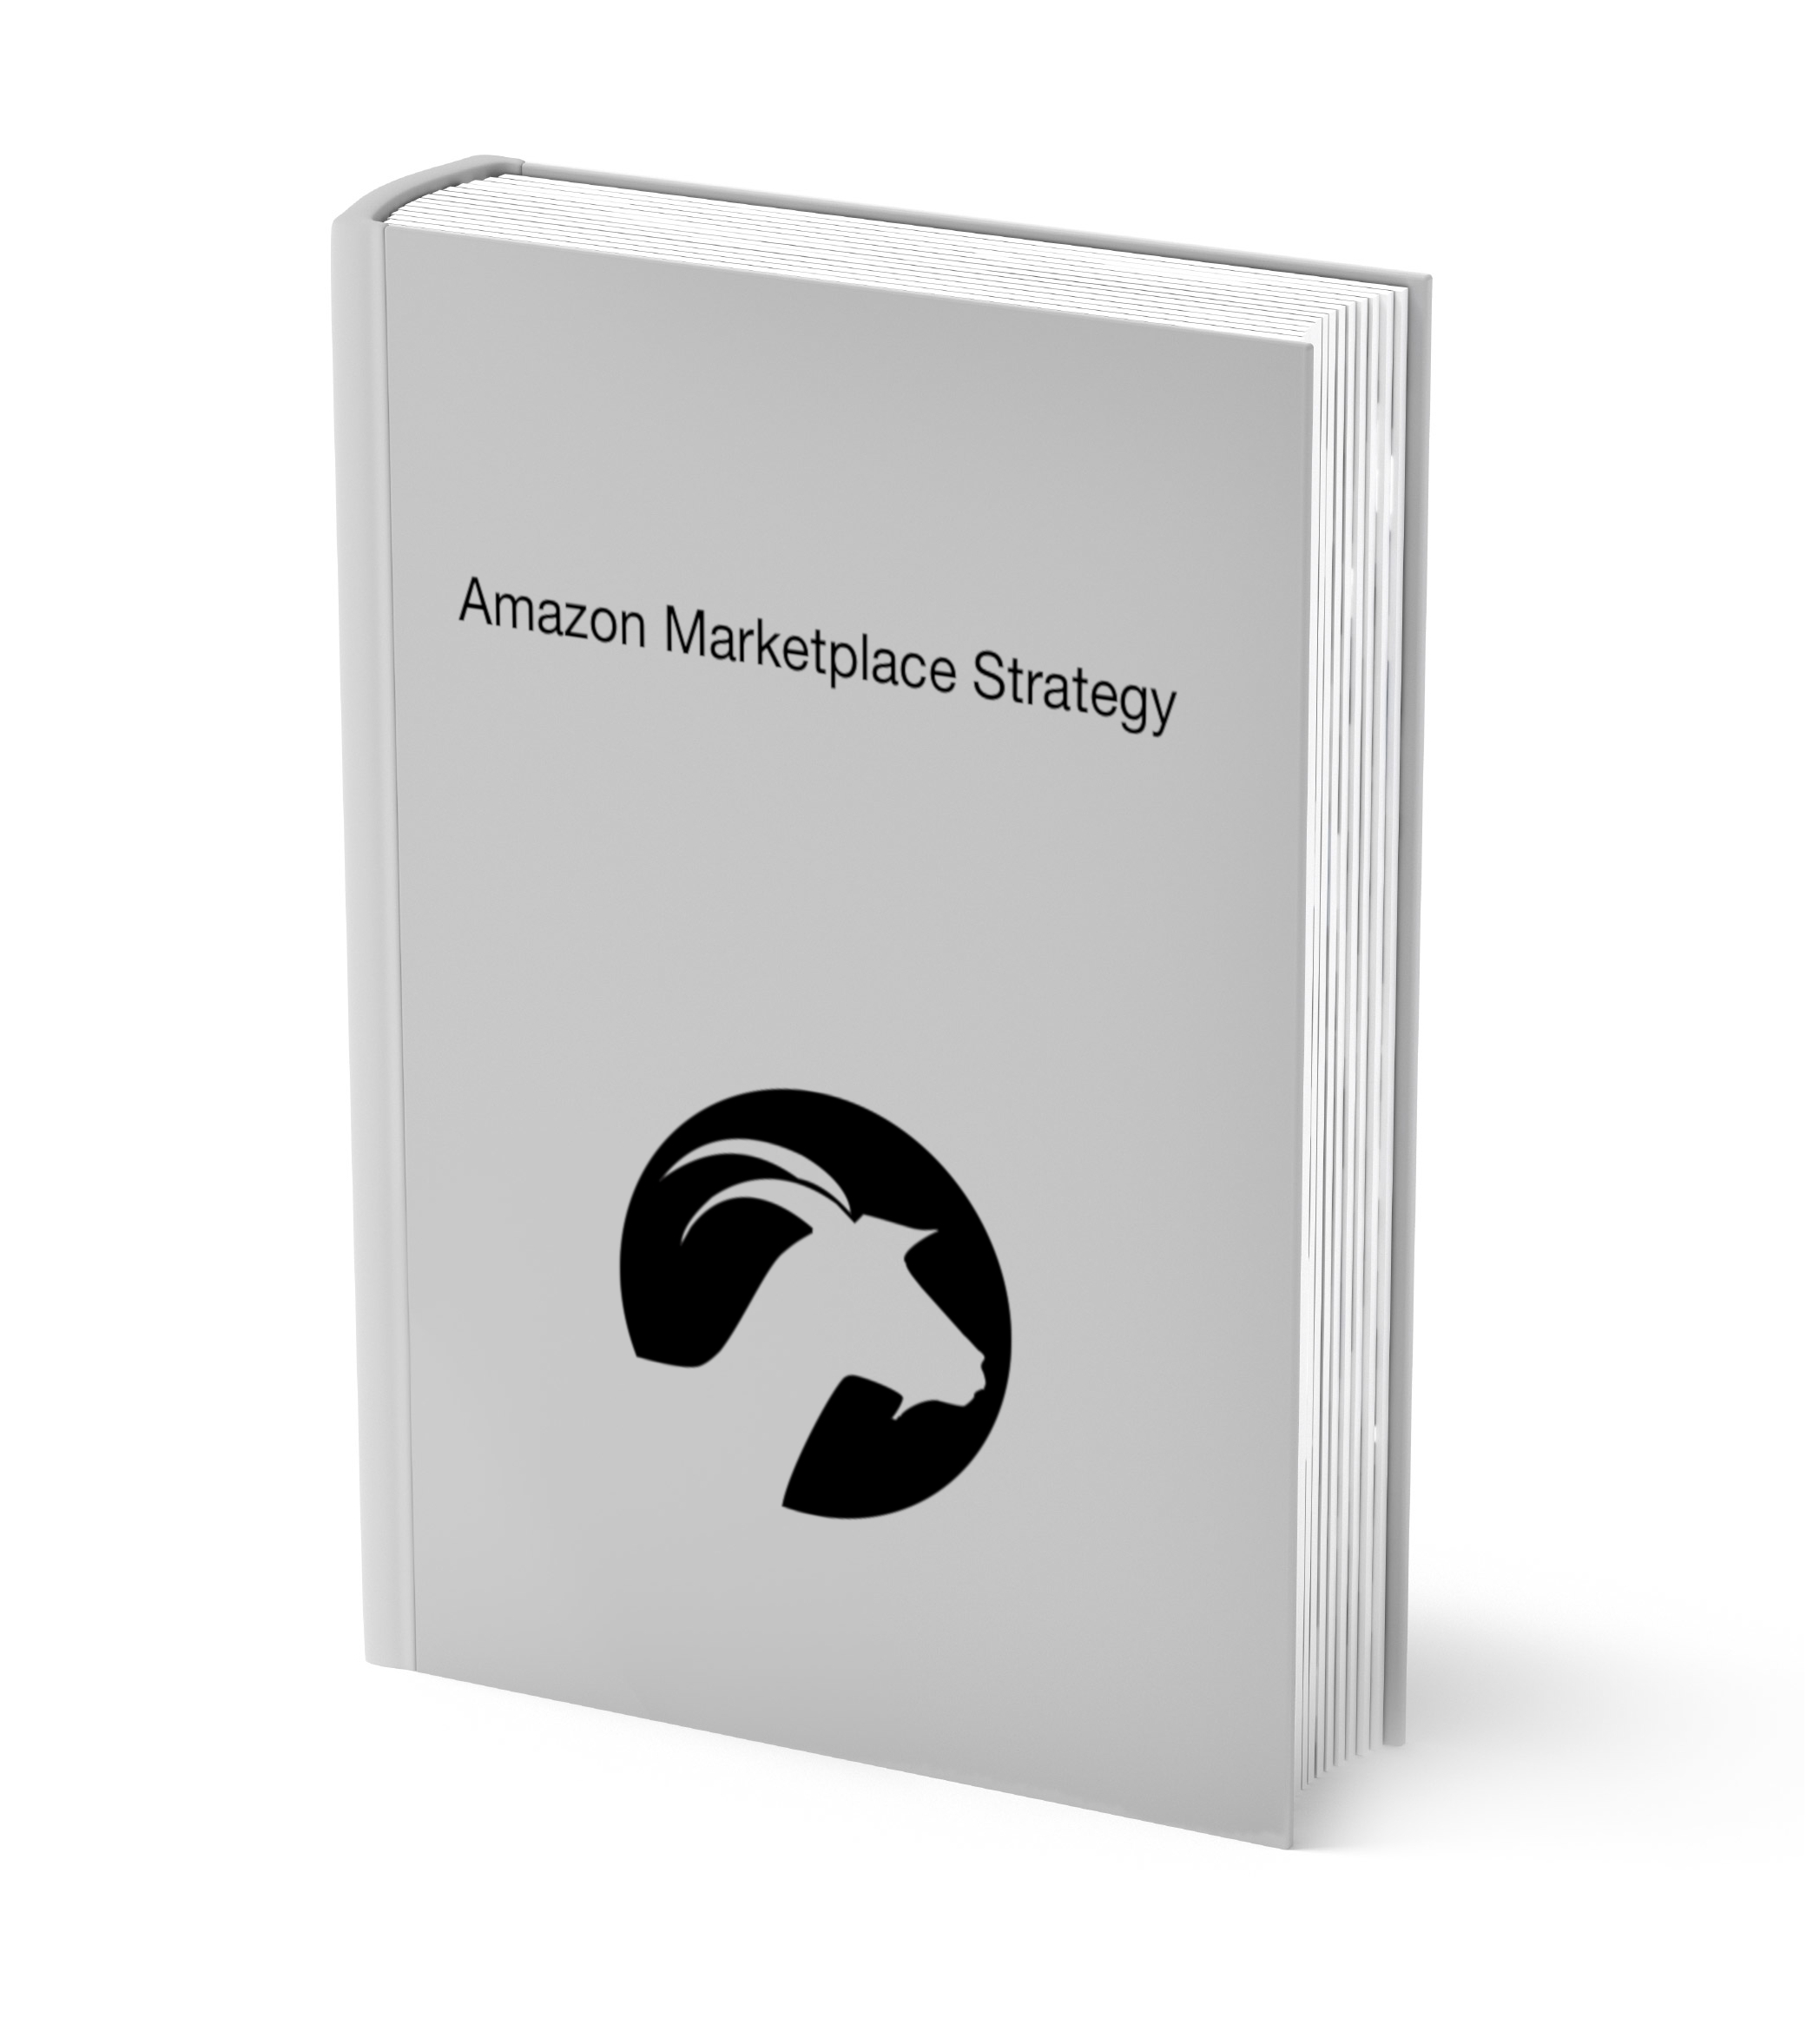 Amazon Marketplace Strategy Book Cover.jpg